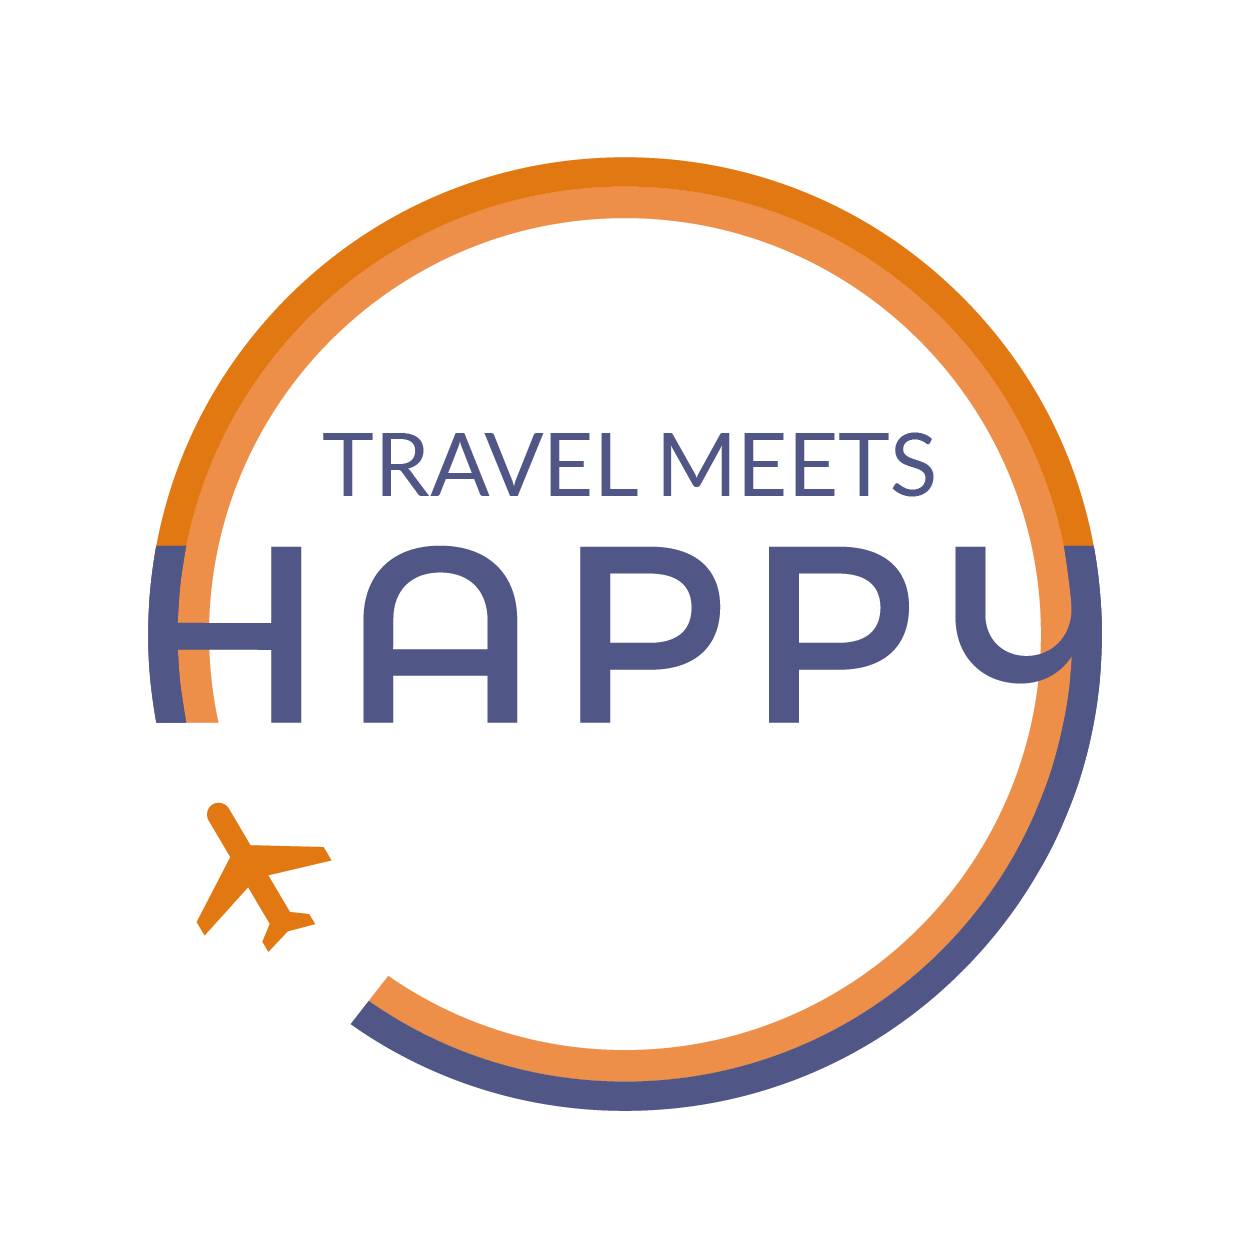 Travel Meets Happy